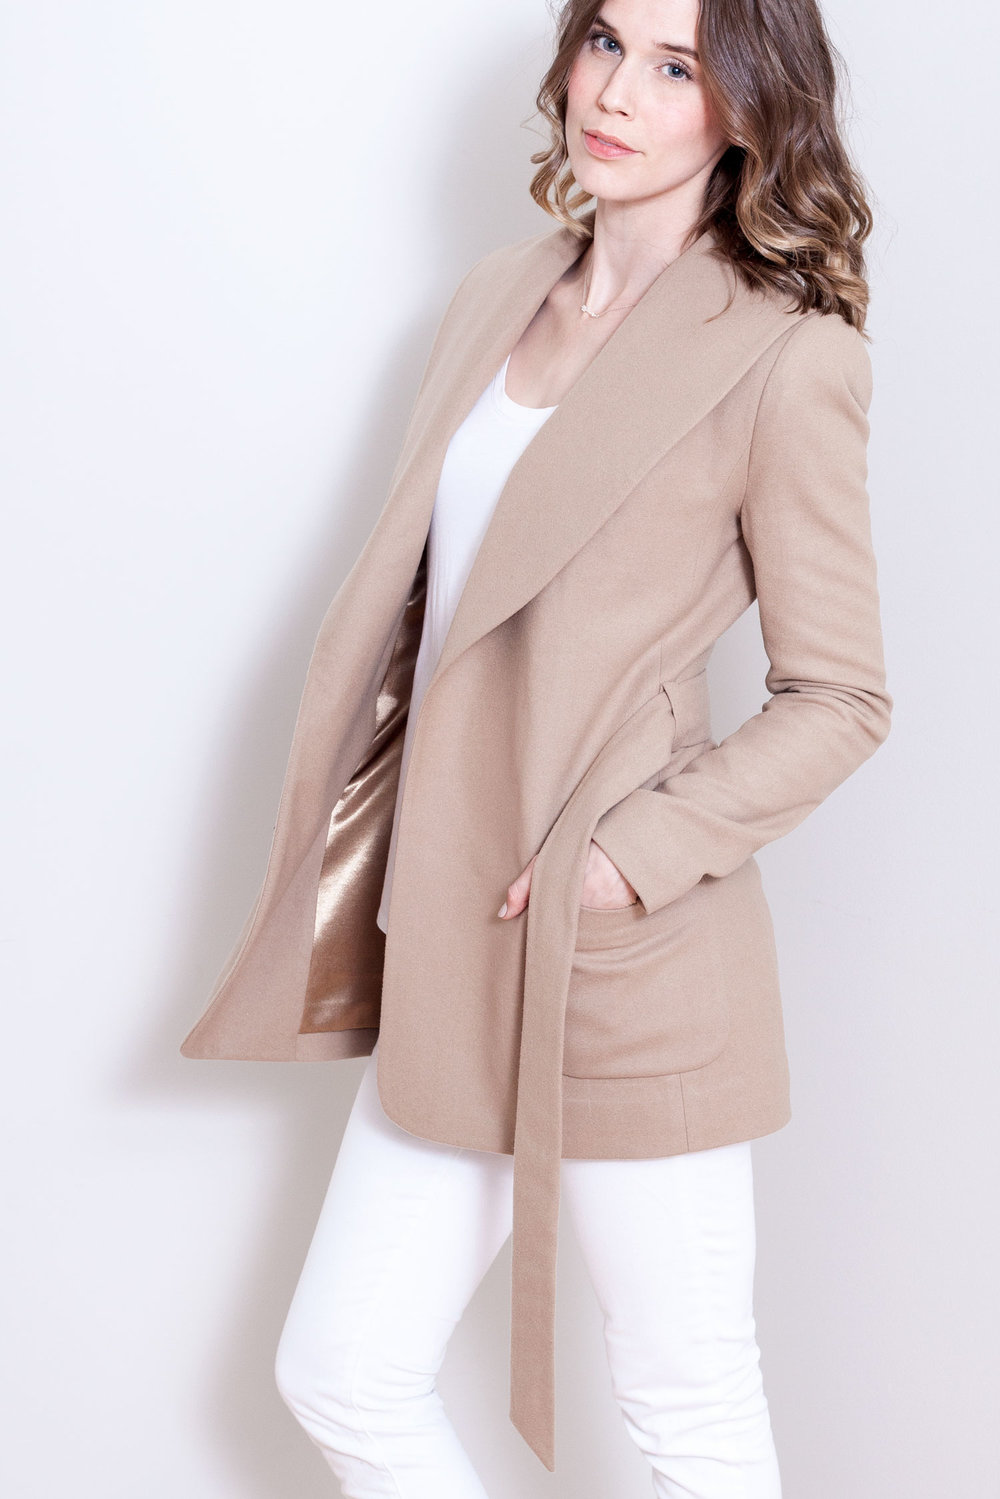 Bluff-Pocket-Shawl-Collar-Wrap-Coat-Camel.jpg